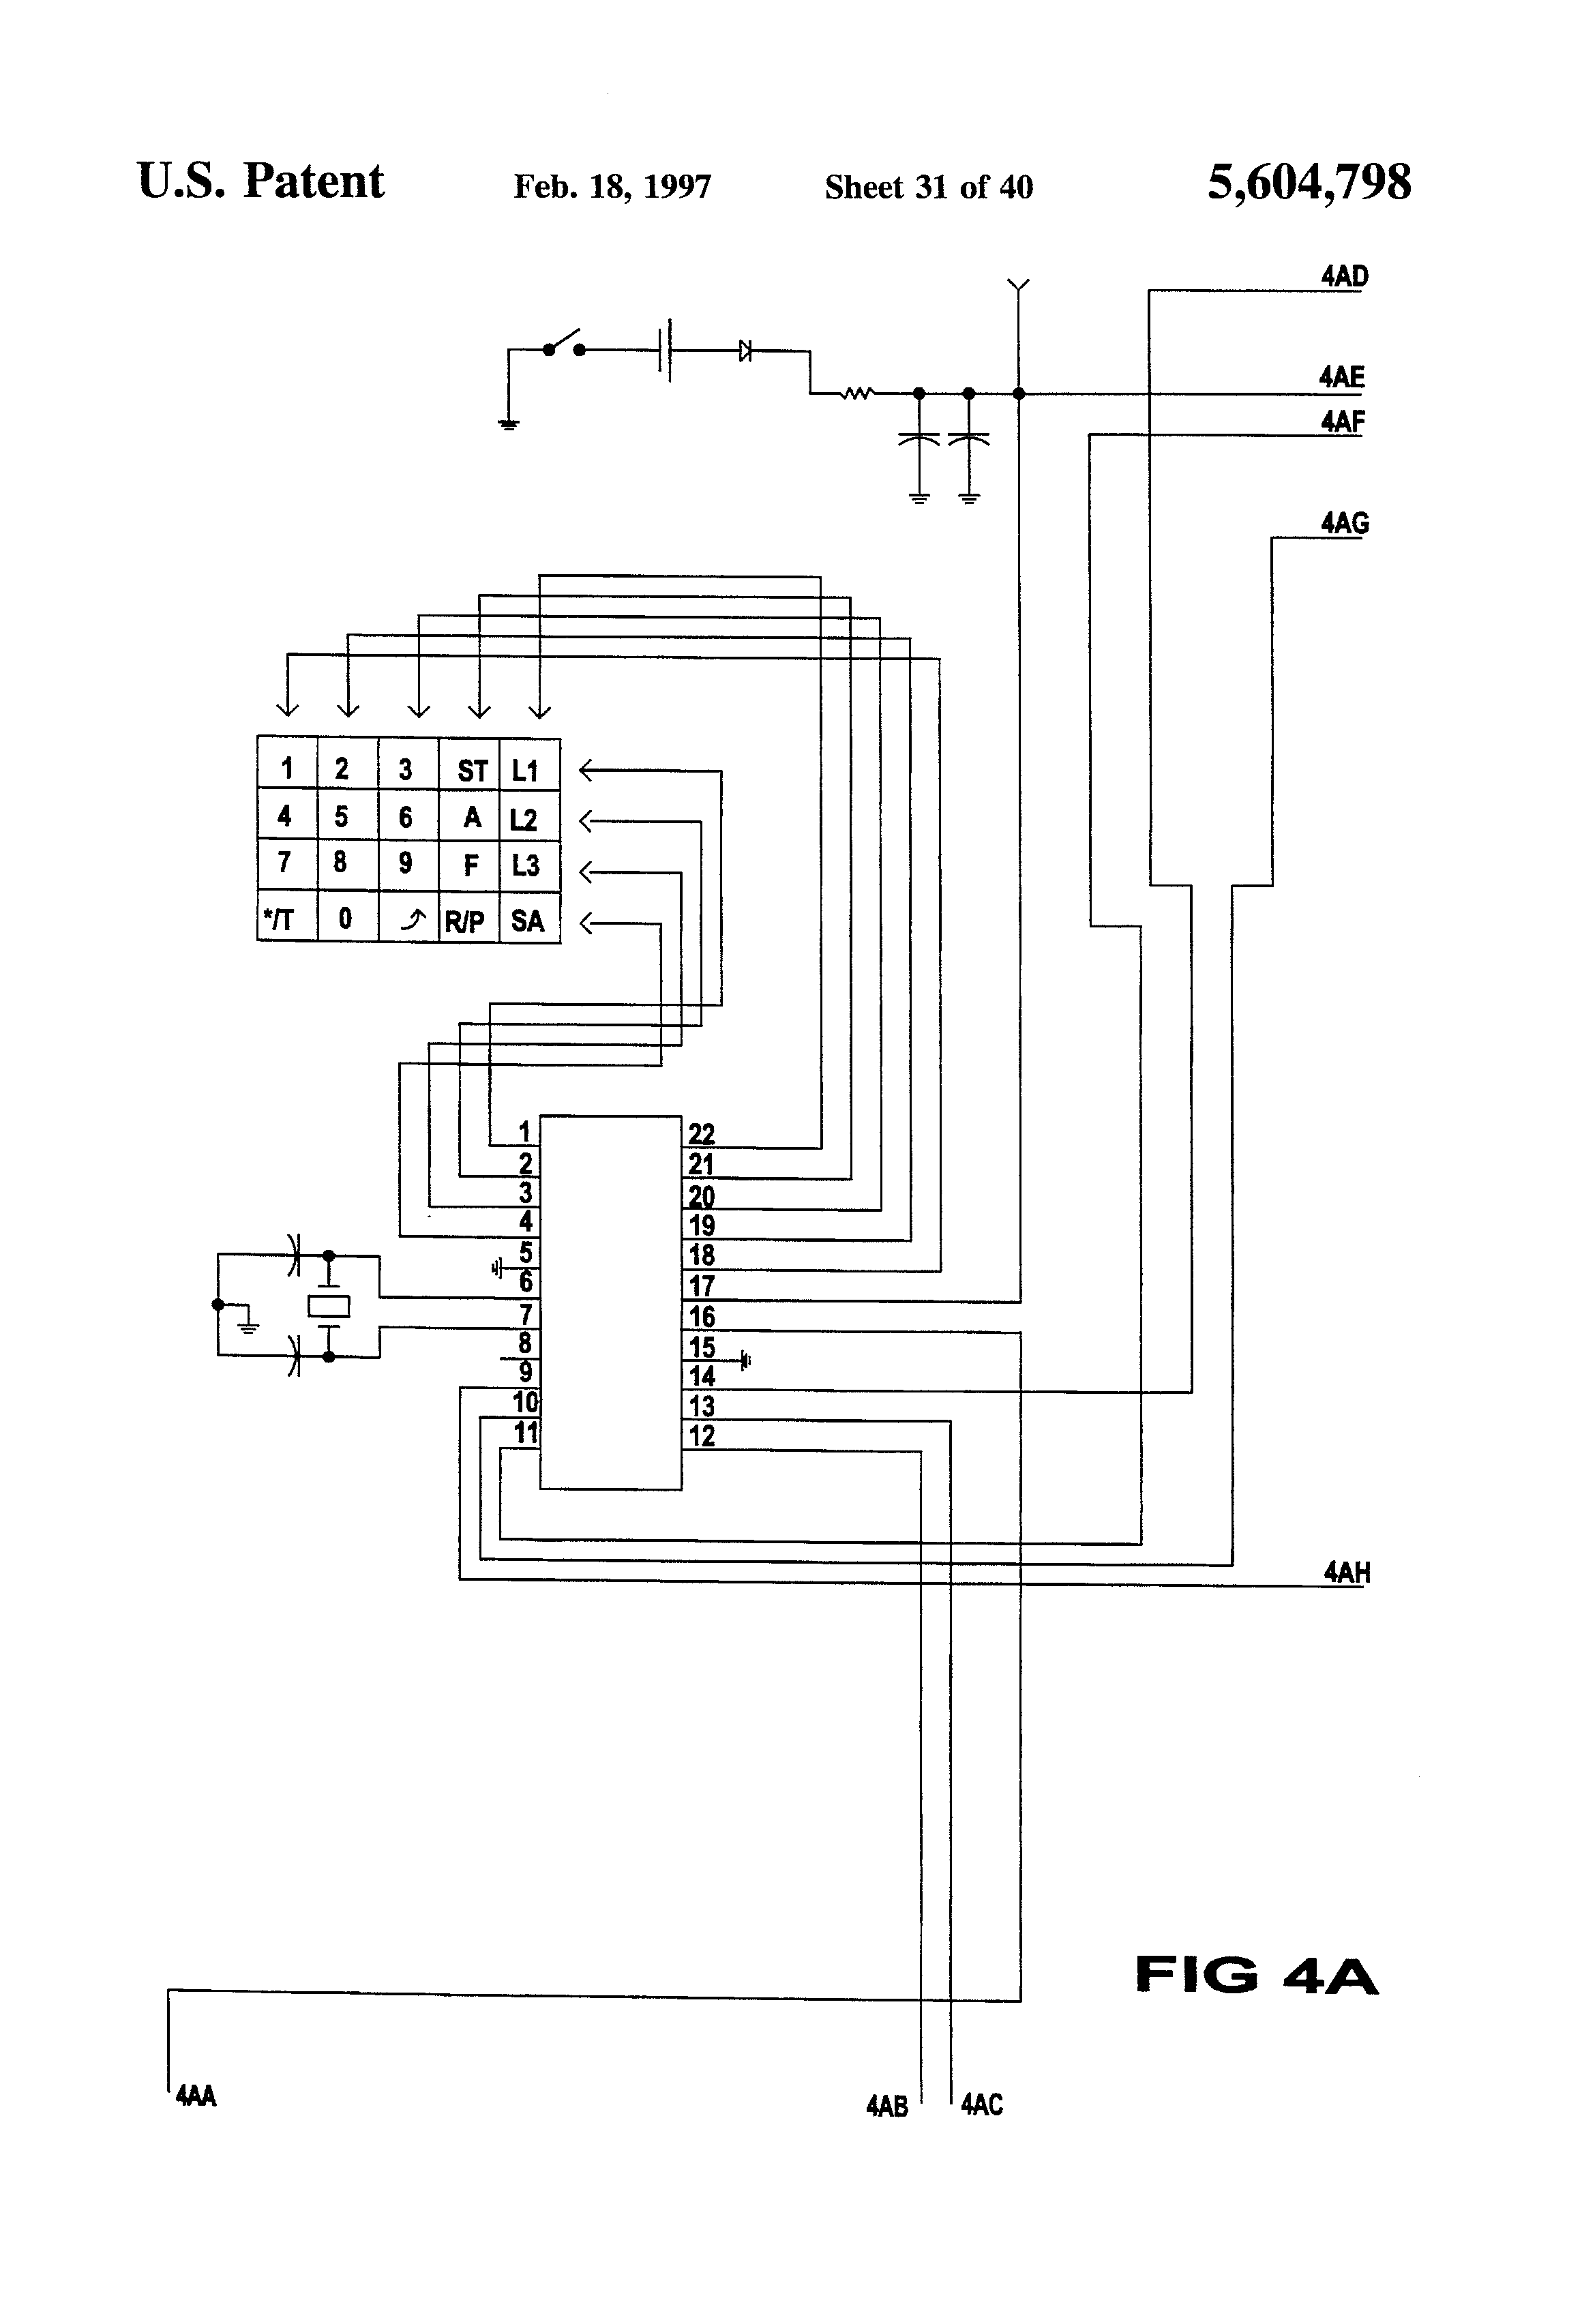 Brevet Us5604798 Telephone System With Automatic Volume Control Winking Leds Schematics Wiring Diagram Circuits Schema Electronic Patent Drawing